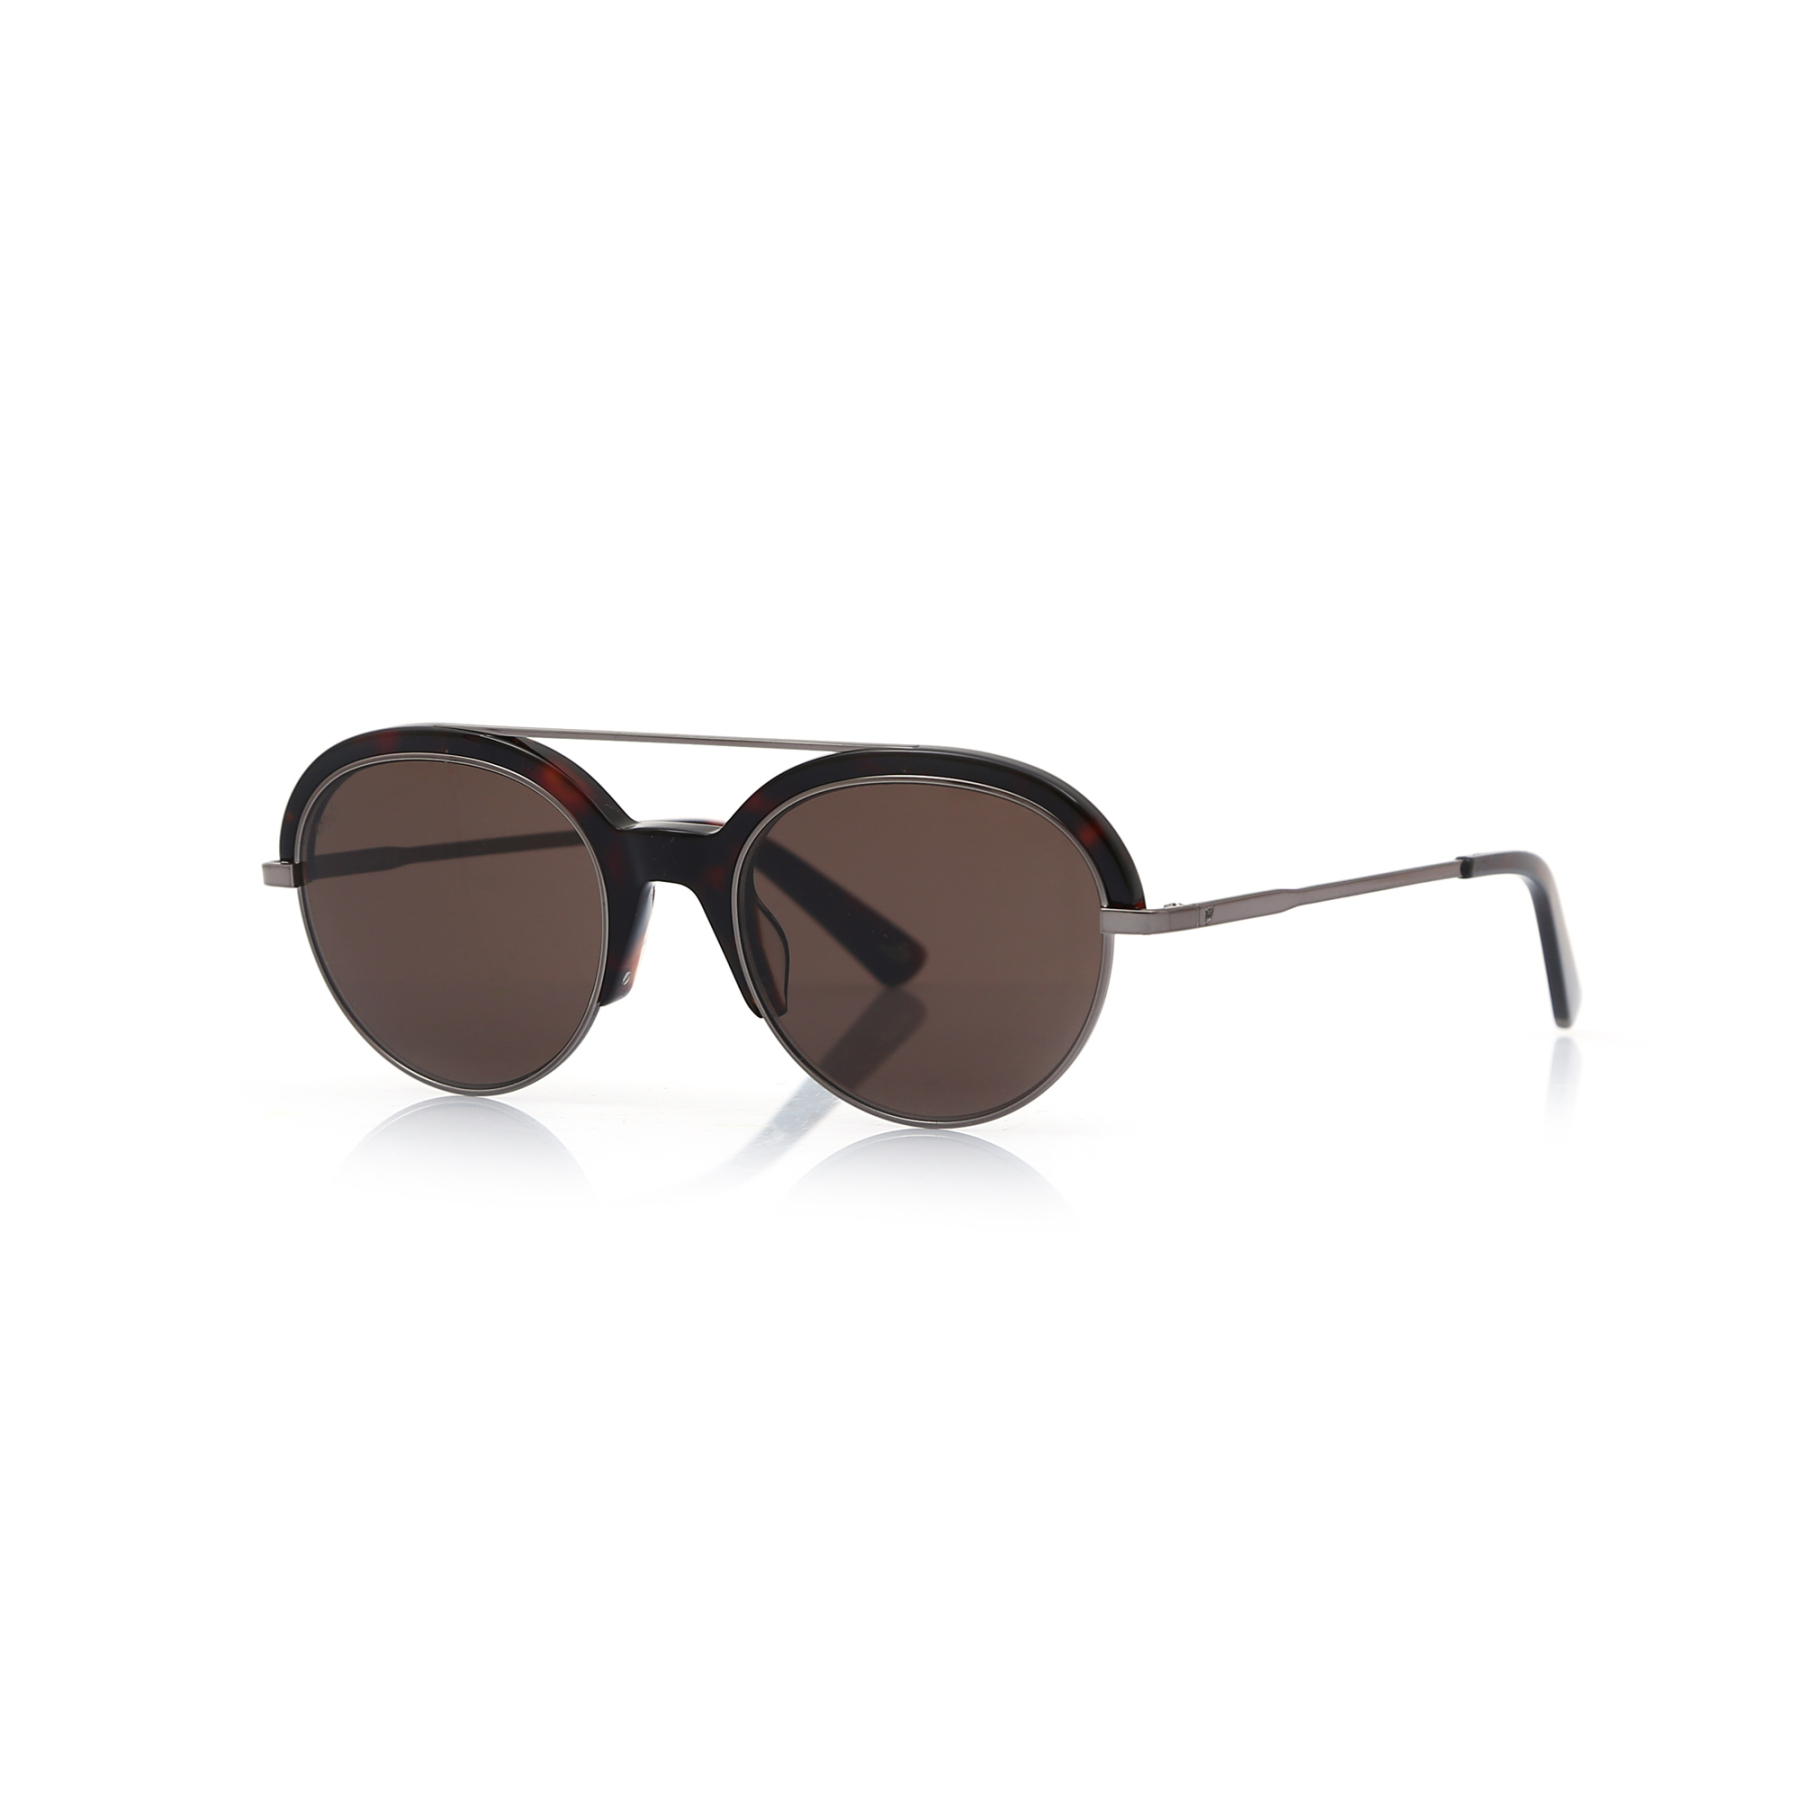 Unisex sunglasses w 0226 55j clubmaster Brown organic oval aval 51-20-145 web